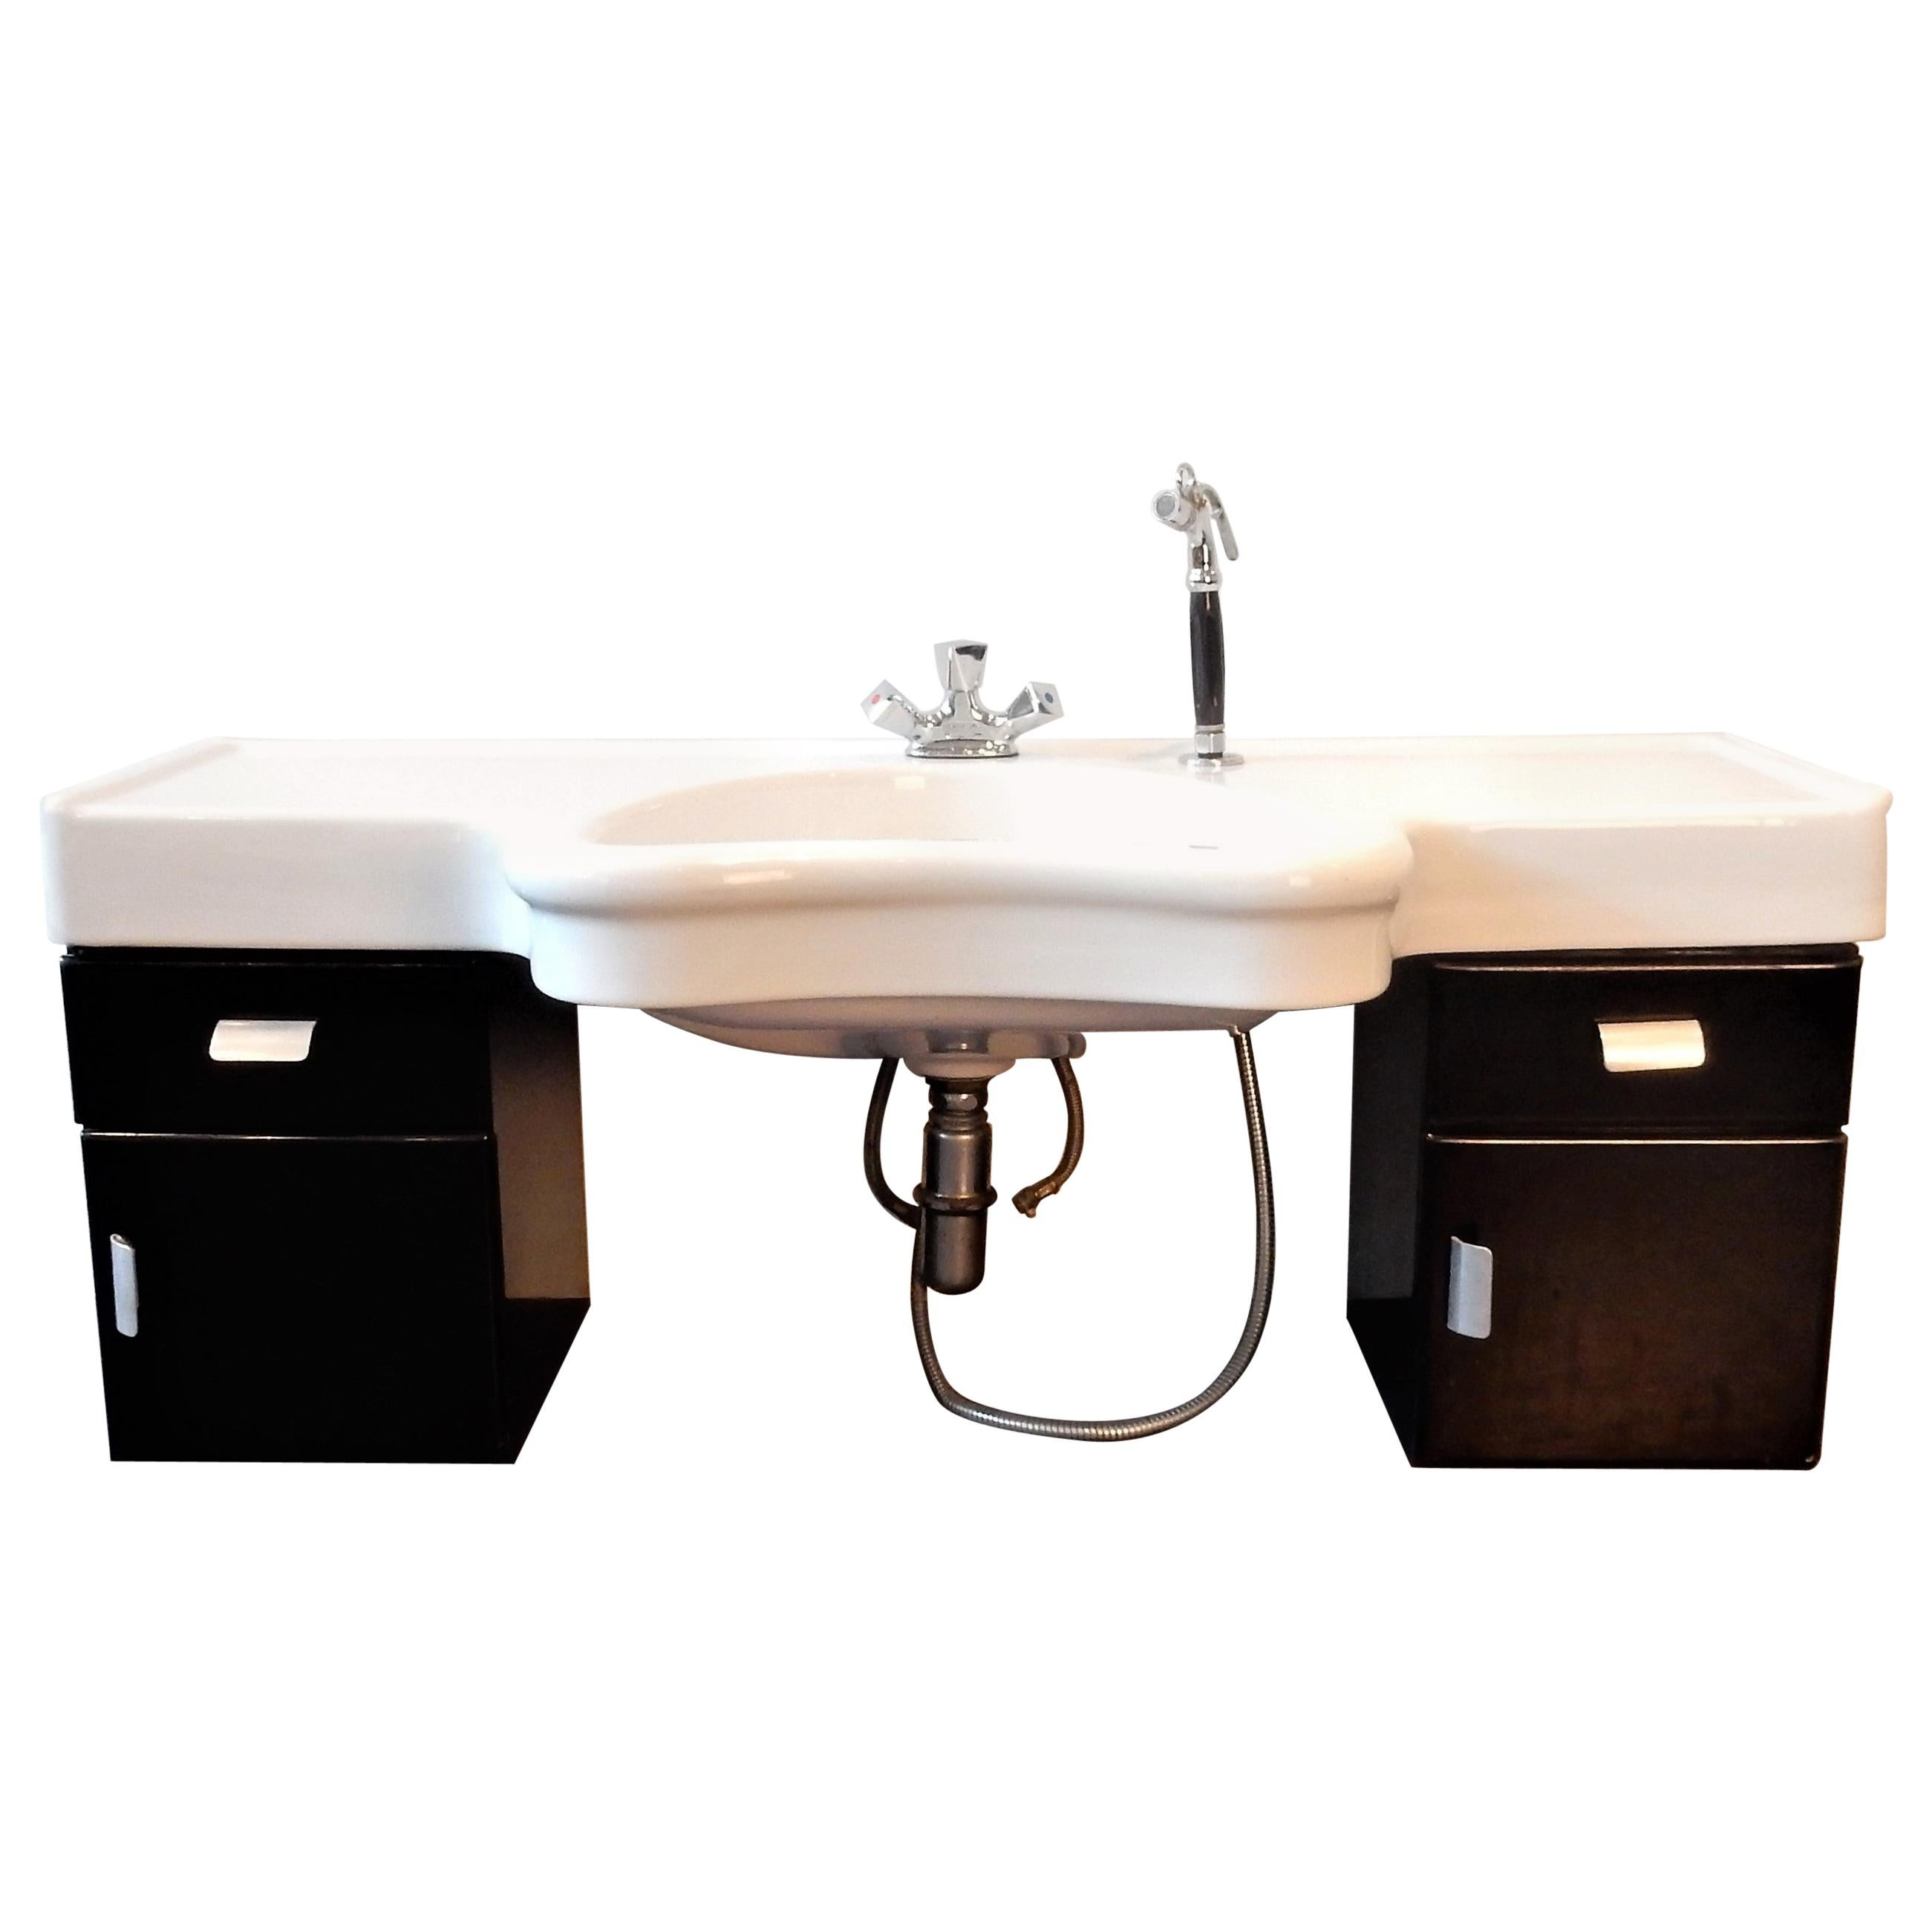 vintage wall mounted hairdressers wash basin with cabinet by olymp germany 1950